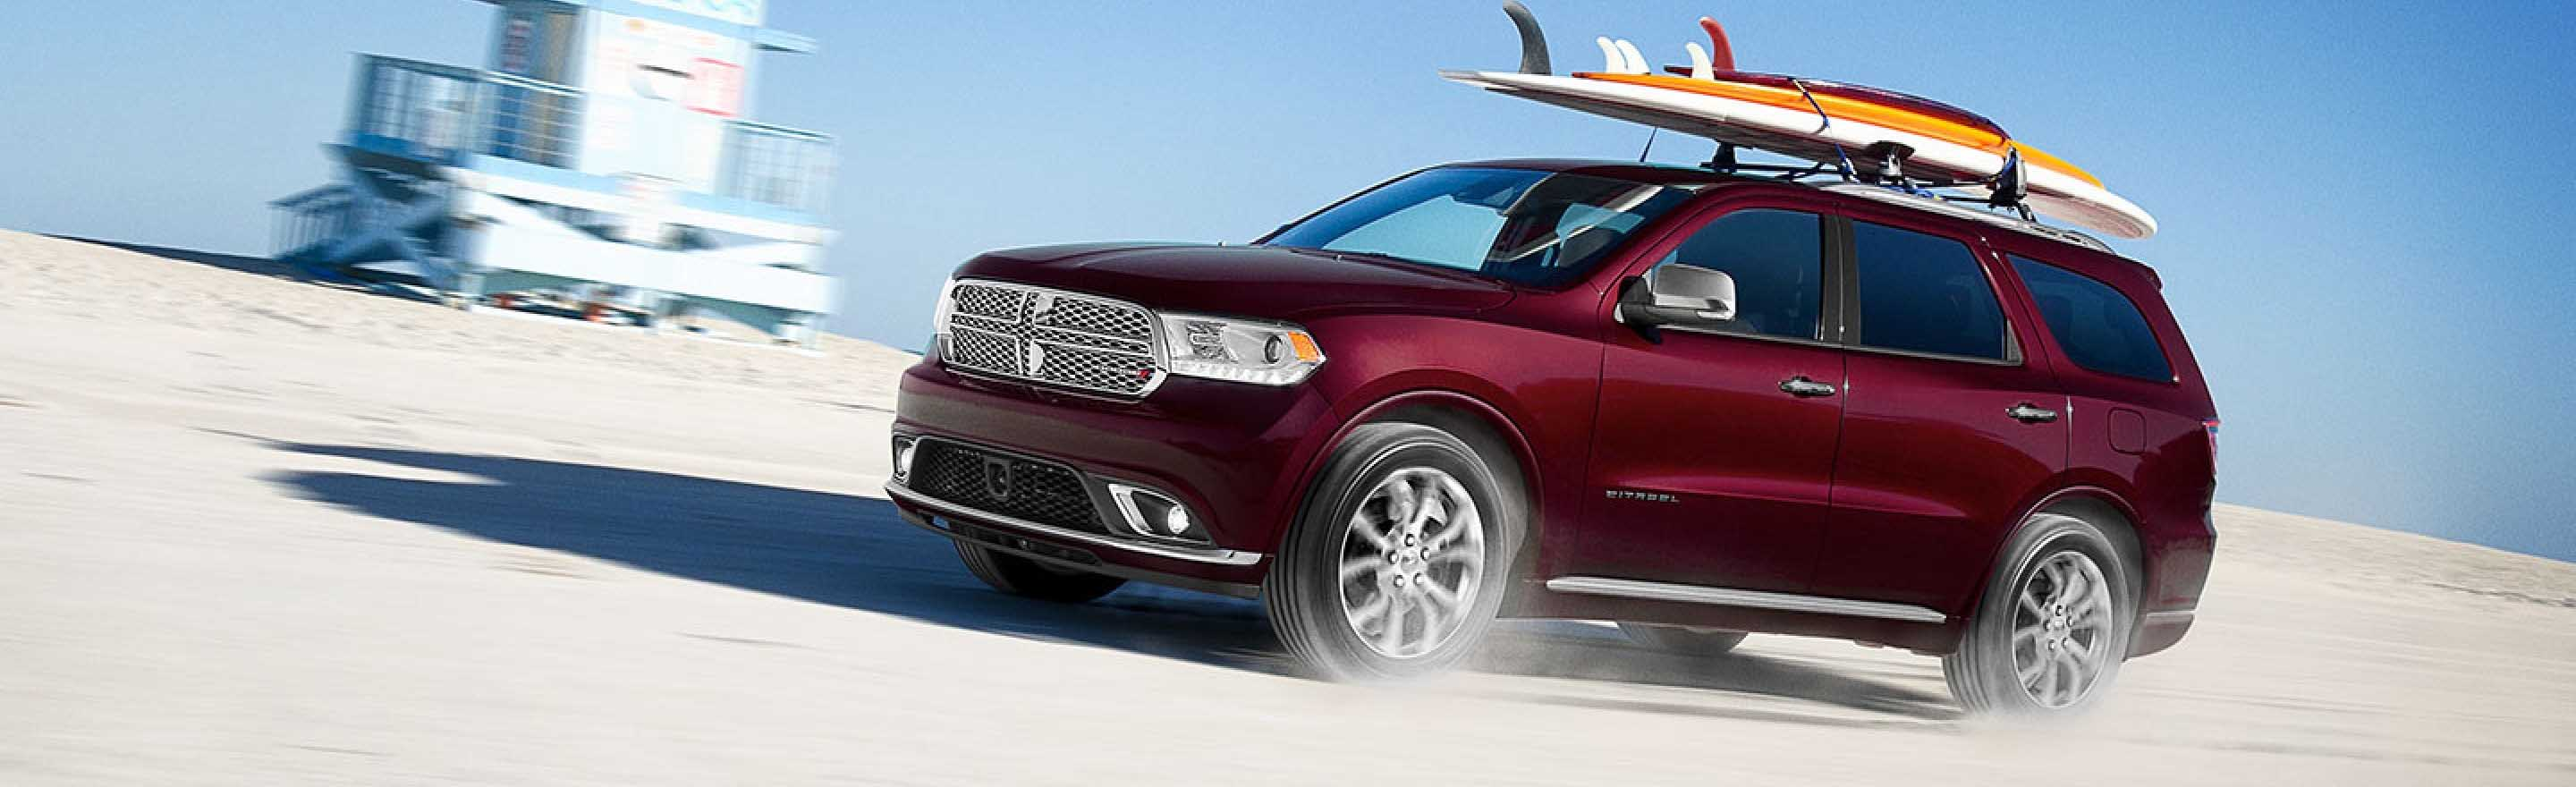 Head To Musson Patout To Find The 2019 Dodge Durango In New Iberia